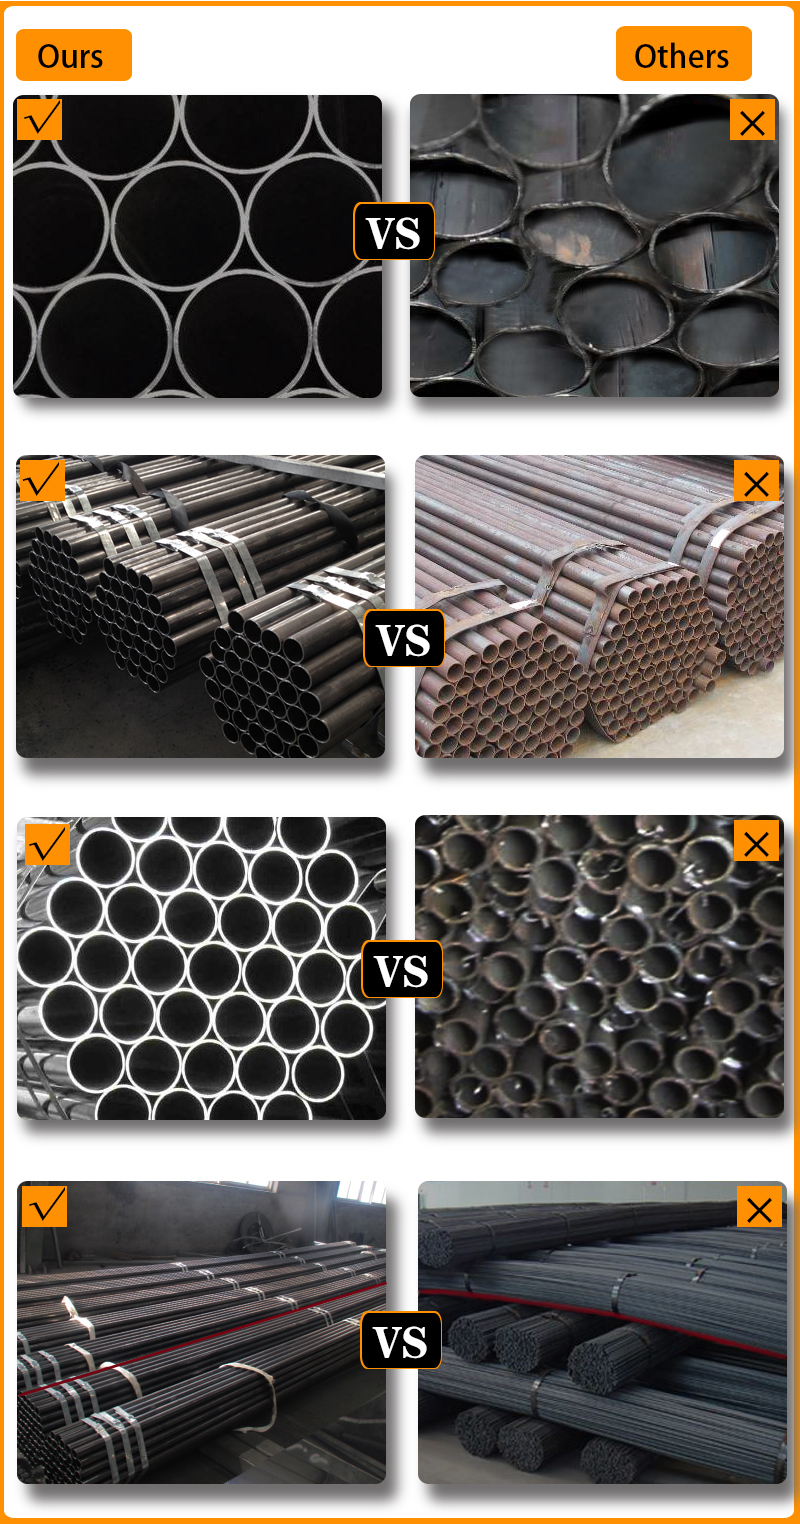 Hot Rolled Round Steel Pipe Comparison